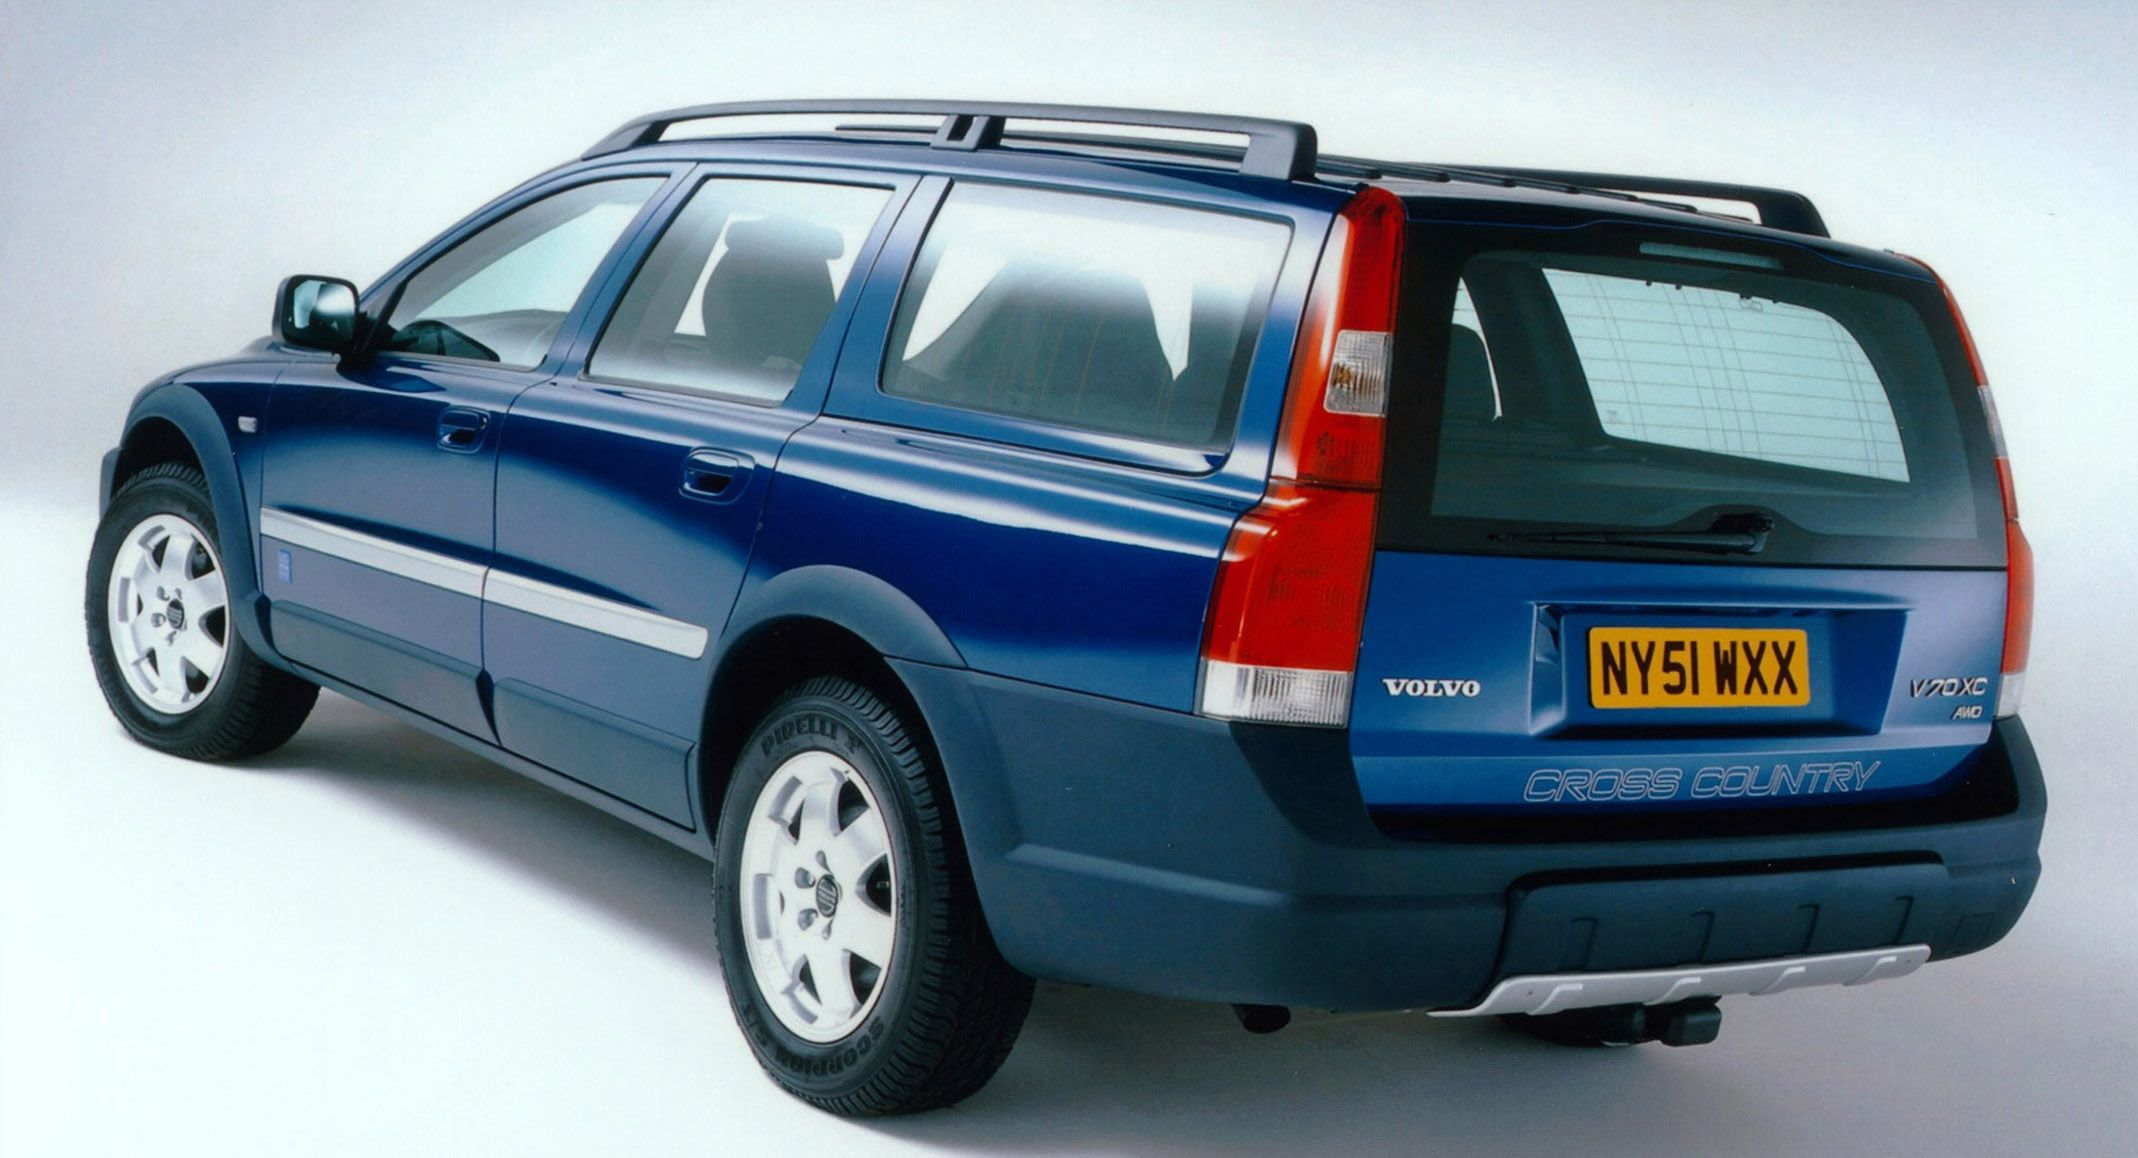 volvo v70 xc cross country ocean race edition 2001 volvo and saabvolvo v70 xc cross country ocean race edition 2001